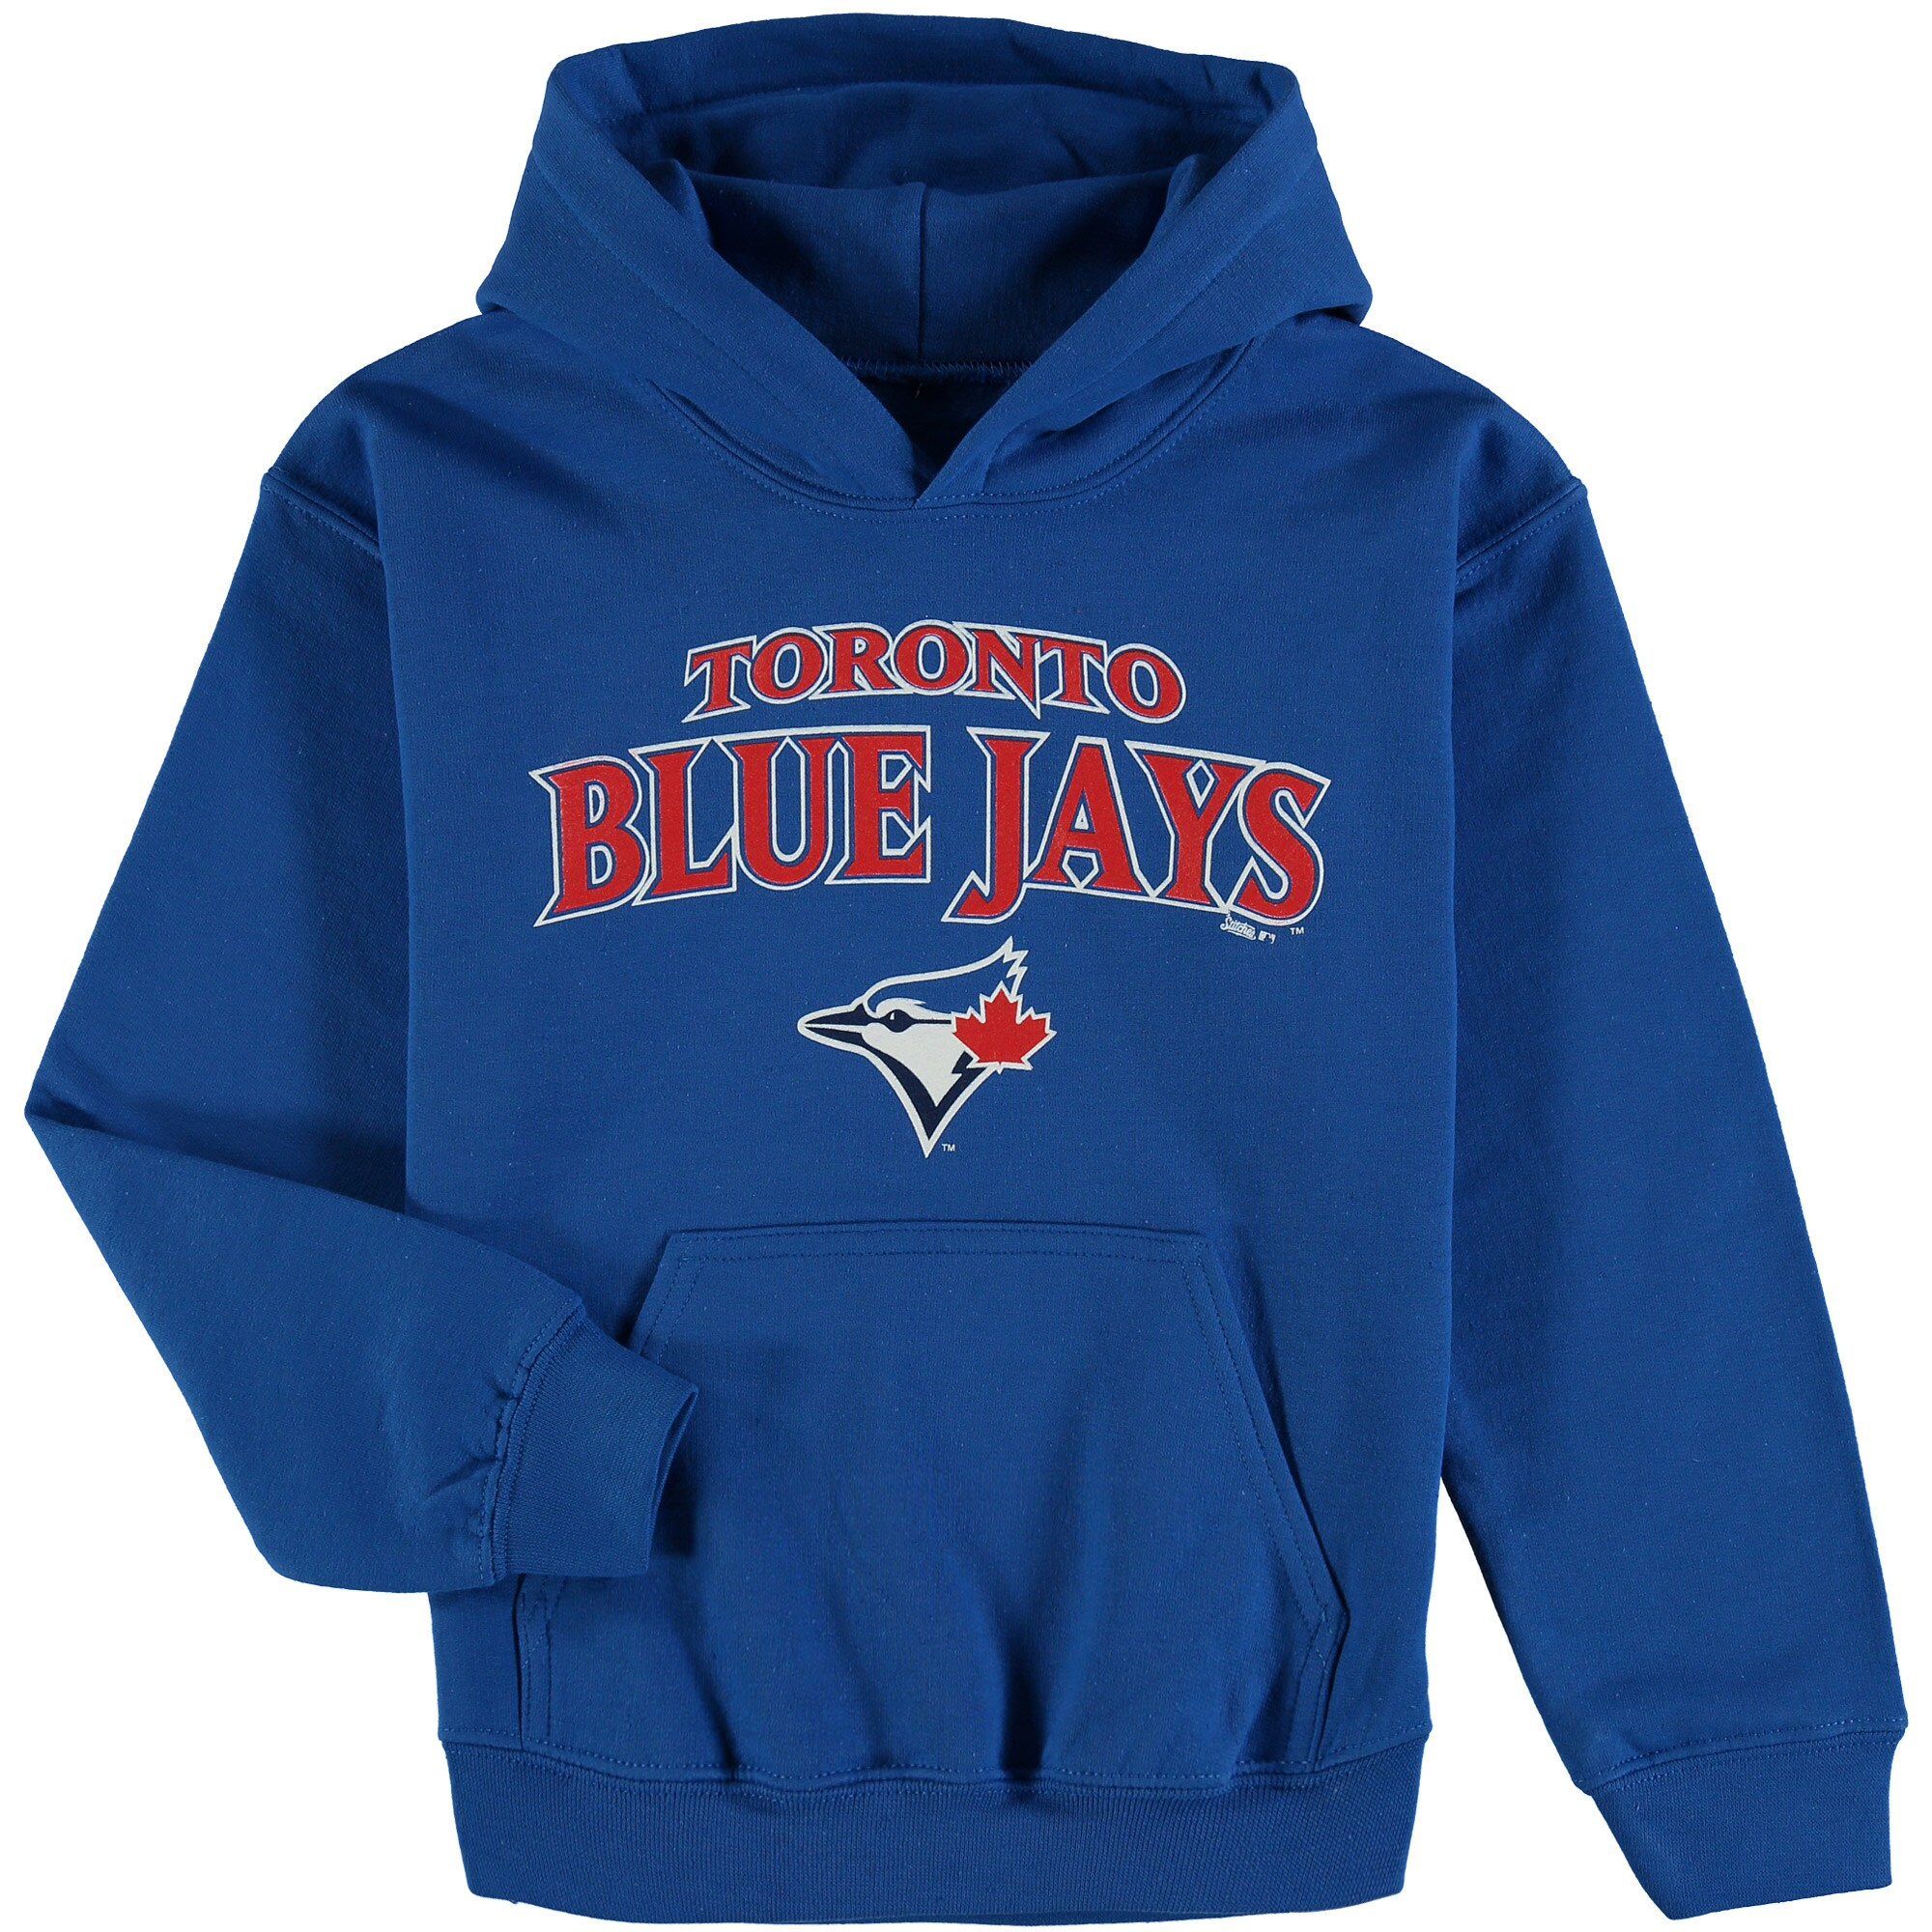 Toronto Blue Jays Stitches Youth Team Fleece Pullover Hoodie - Royal